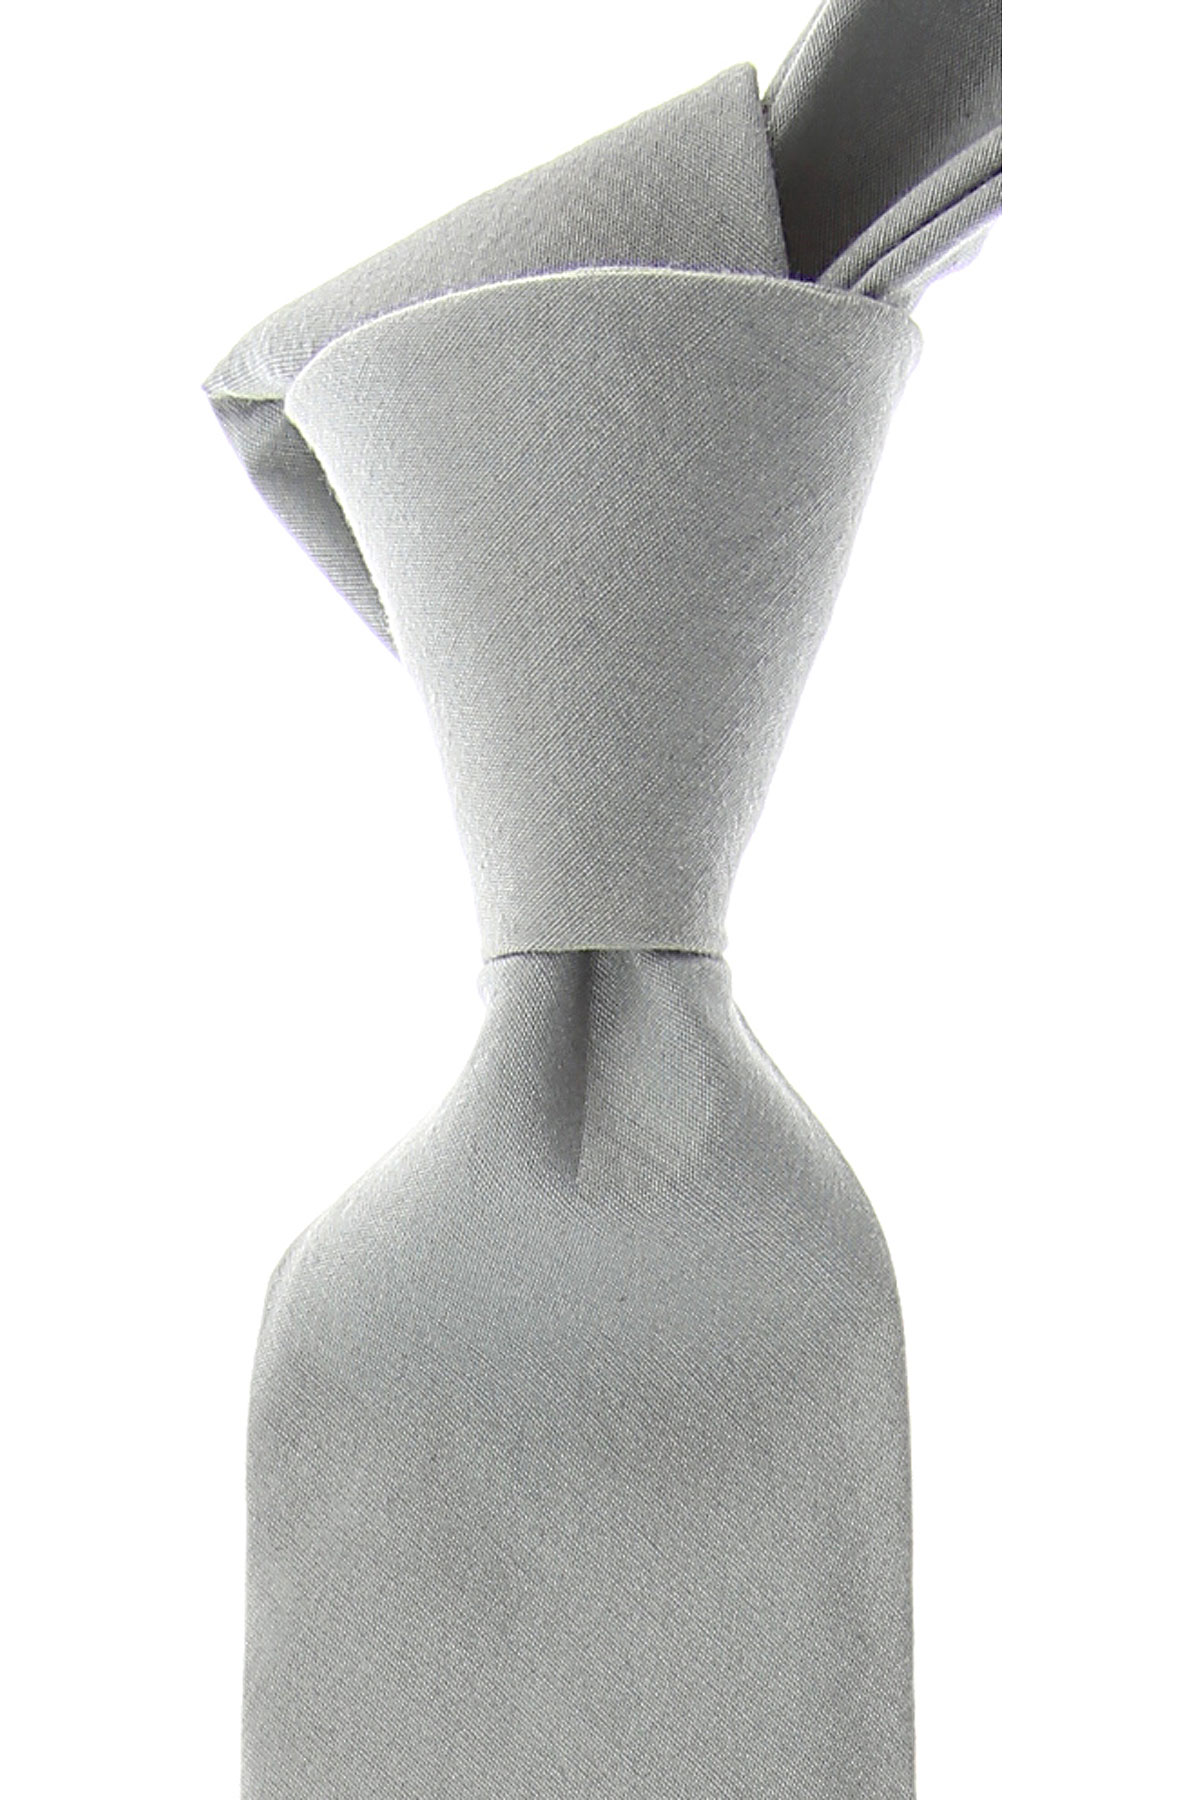 Ermenegildo_Zegna_Ties_On_Sale_Sage_Gray_Silk_2019